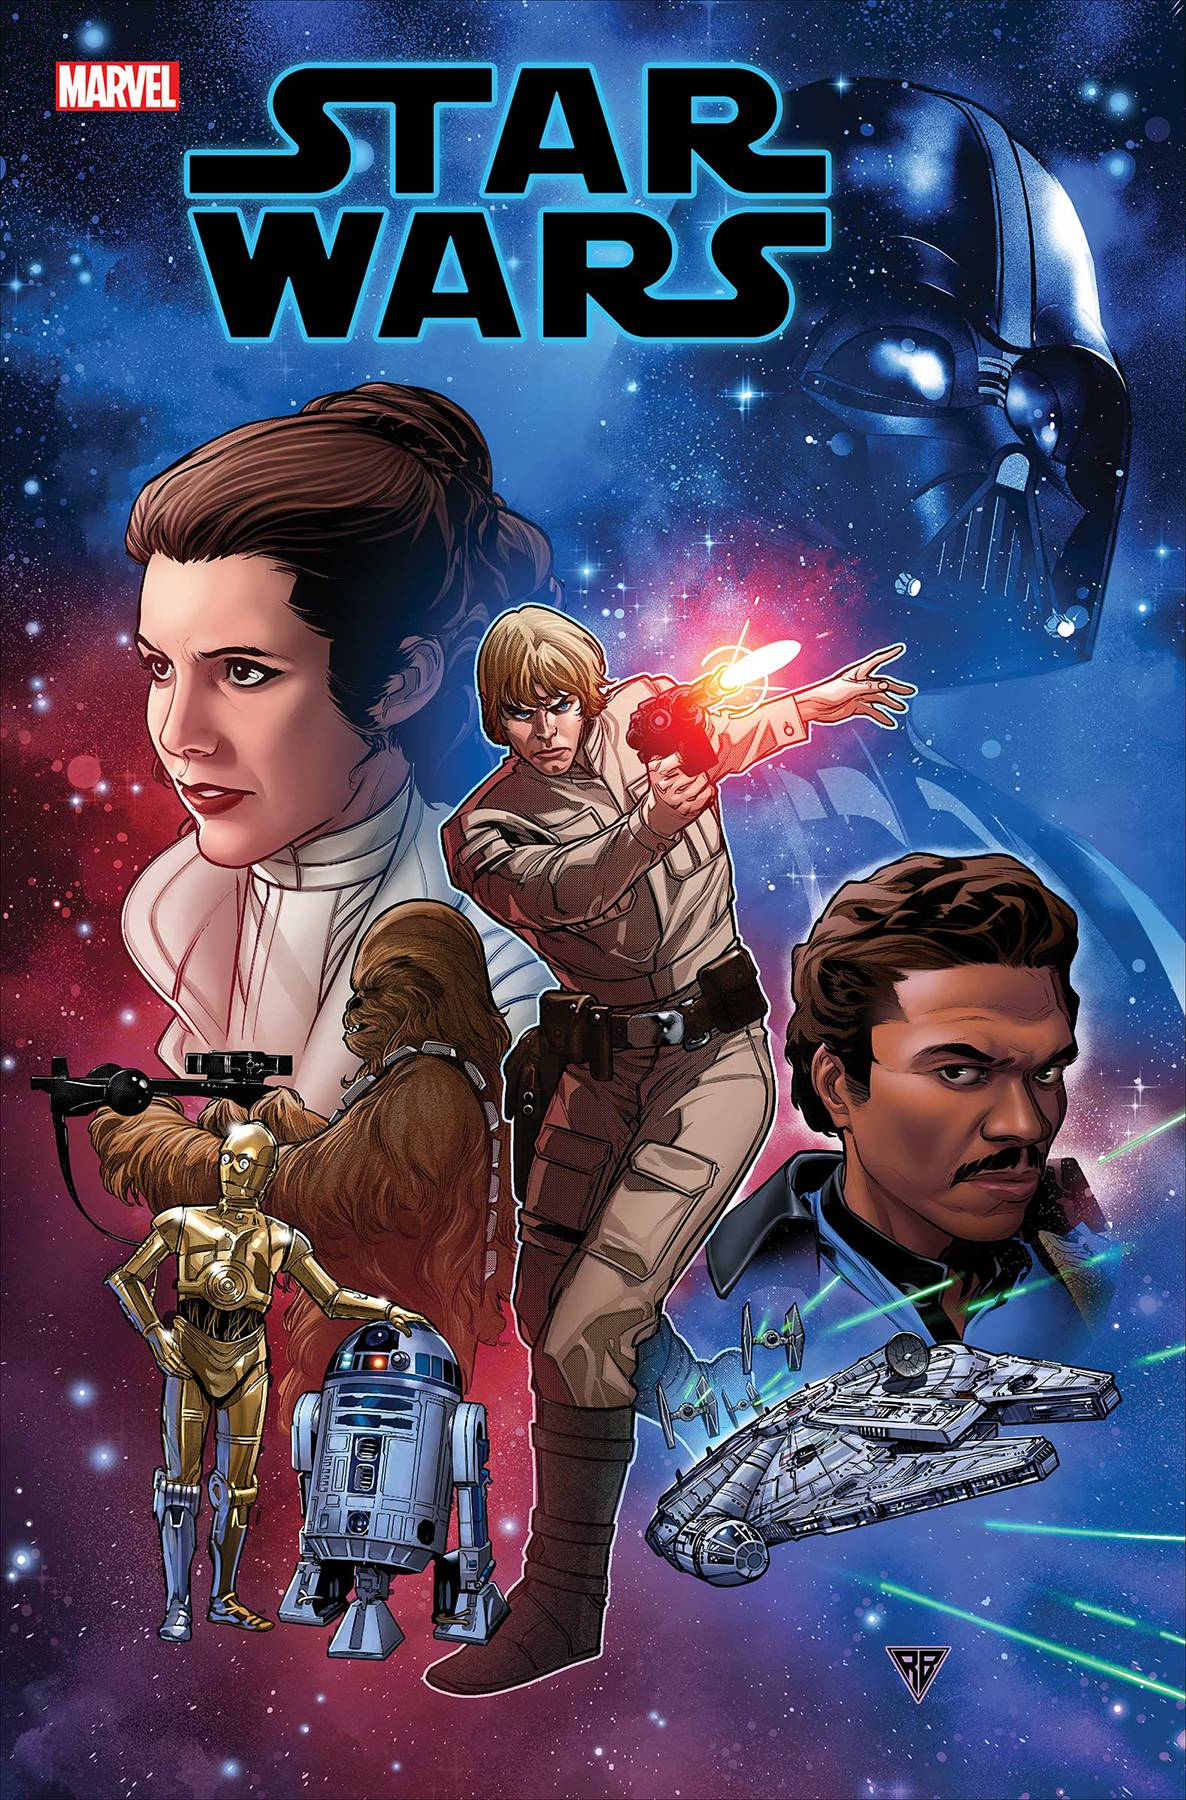 01/01/2020 STAR WARS #1 (Free with $10 Purchase. Limited 1 Per Order)